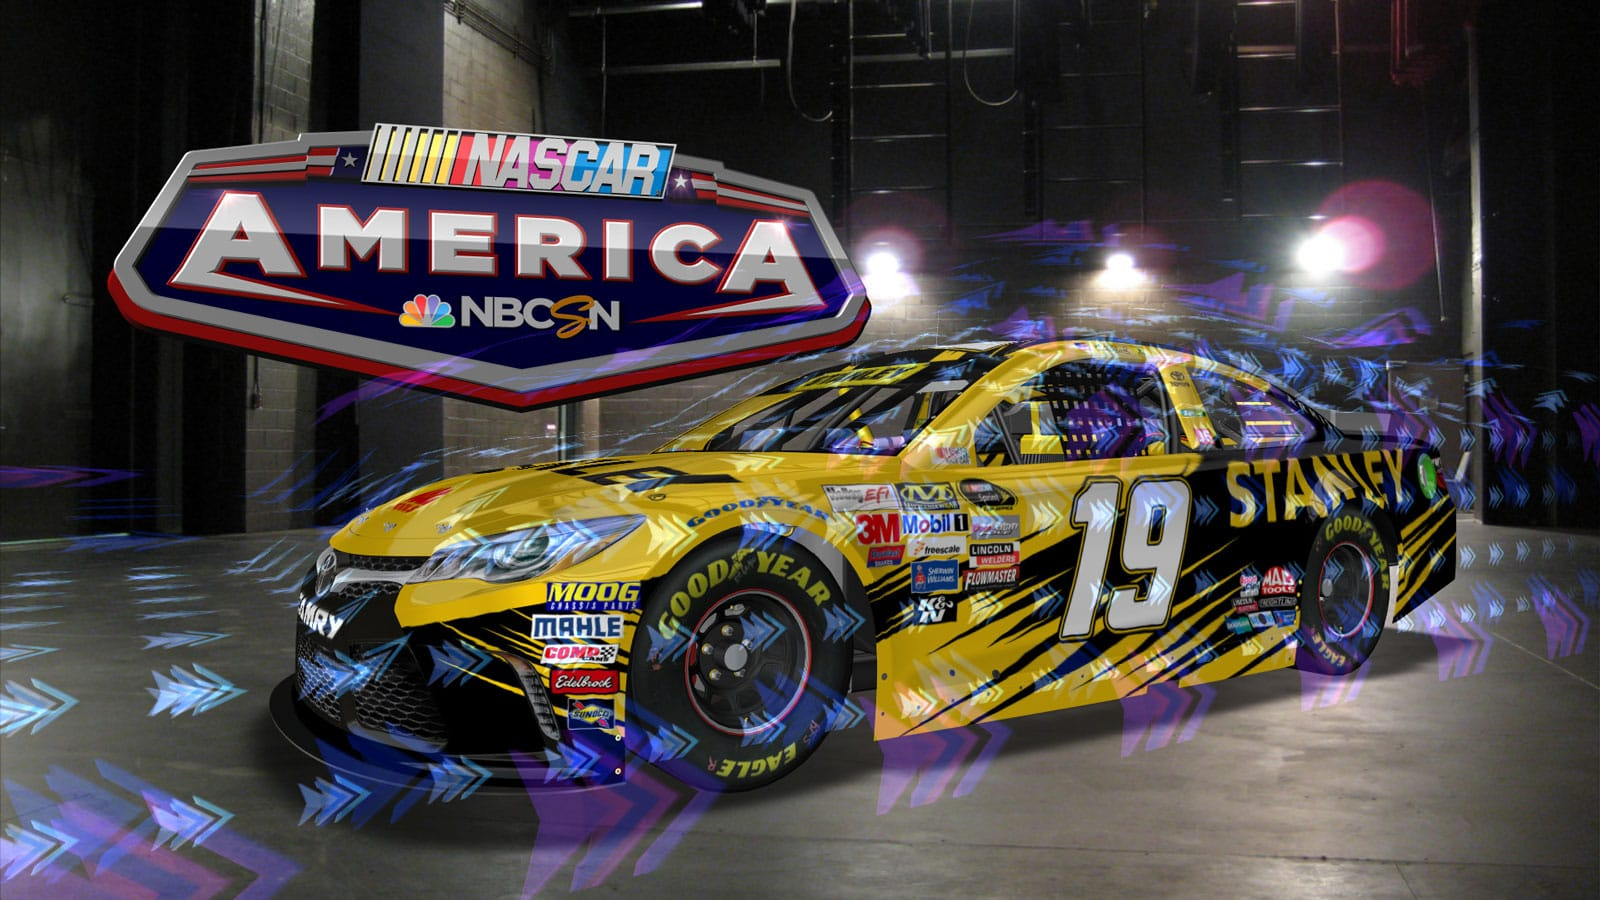 2016 NBC NASCAR Virtual Car Demo Girraphic